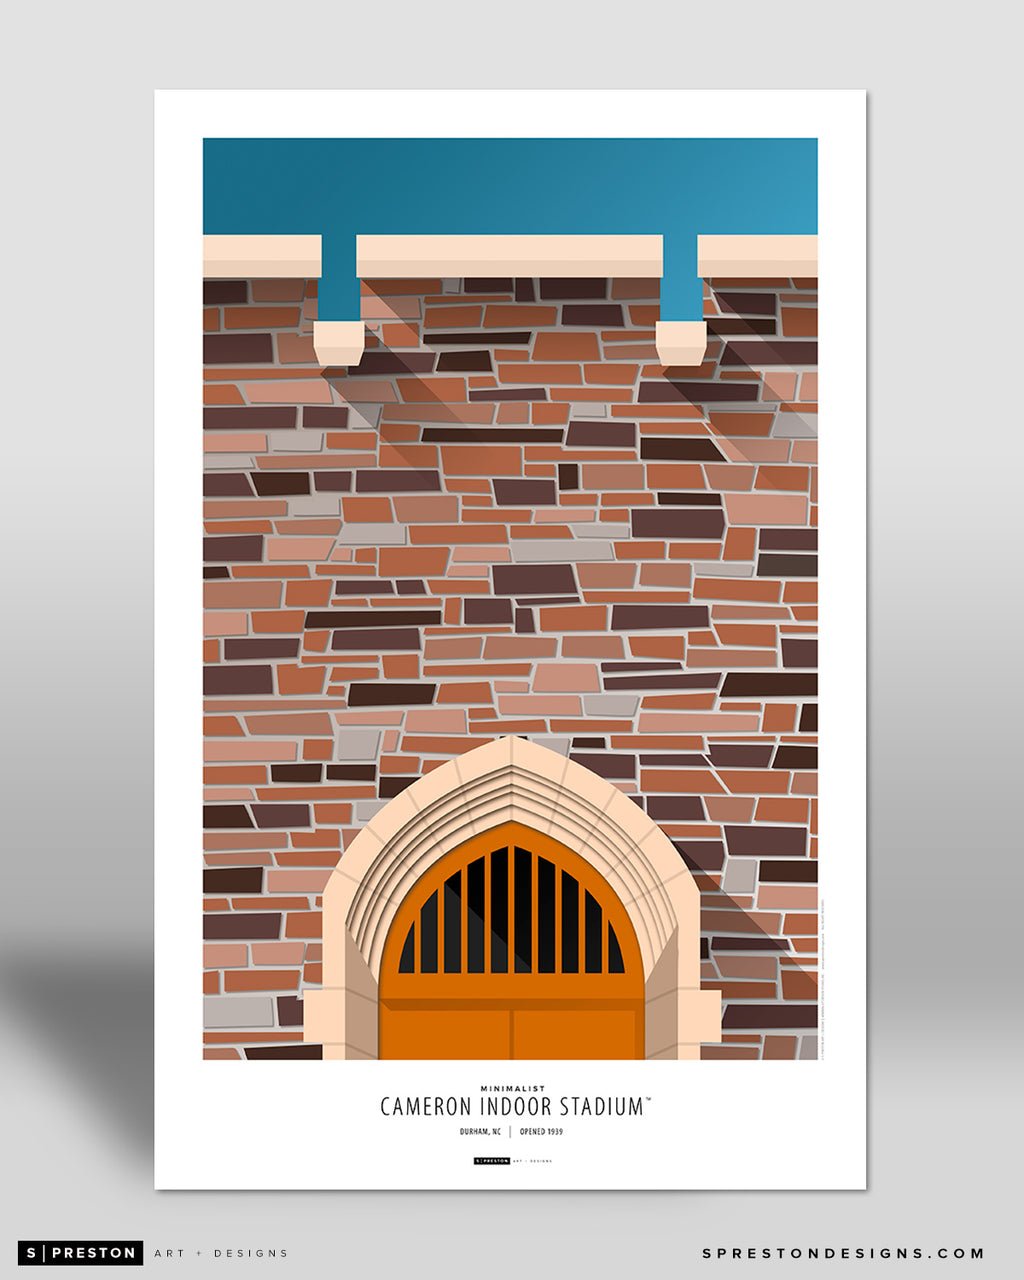 Minimalist Cameron Indoor Stadium Poster Print Duke University - S Preston